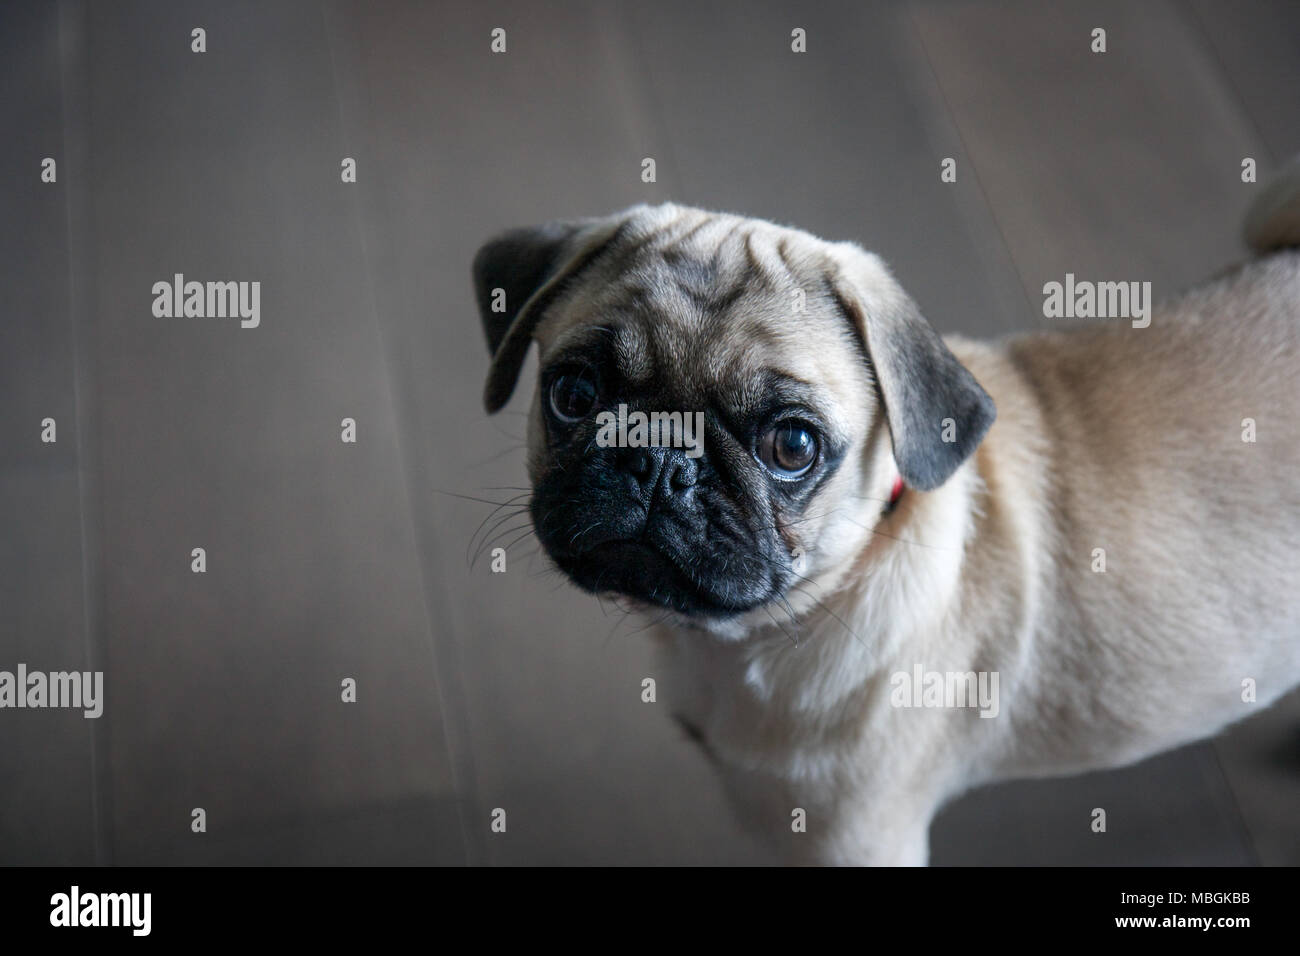 Adorable Chiot Pug regardant vers le haut Photo Stock